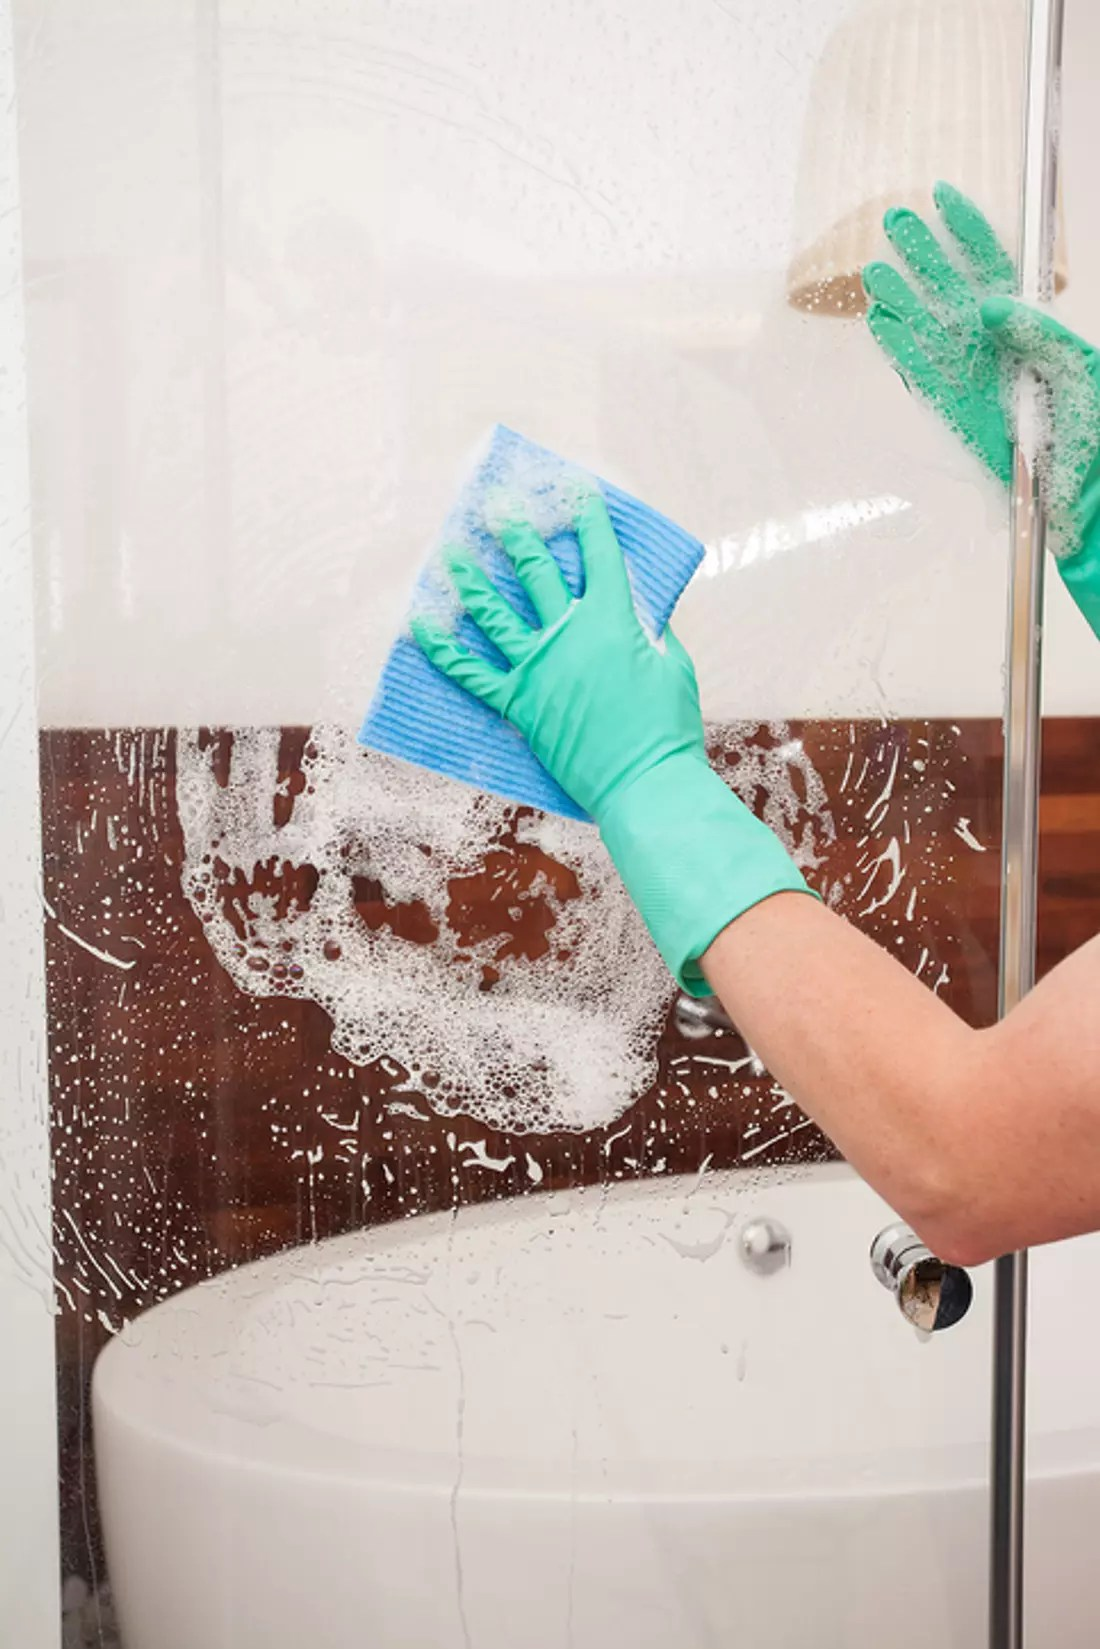 Image Result For How To Clean Soap Sfrom Shower Tiles